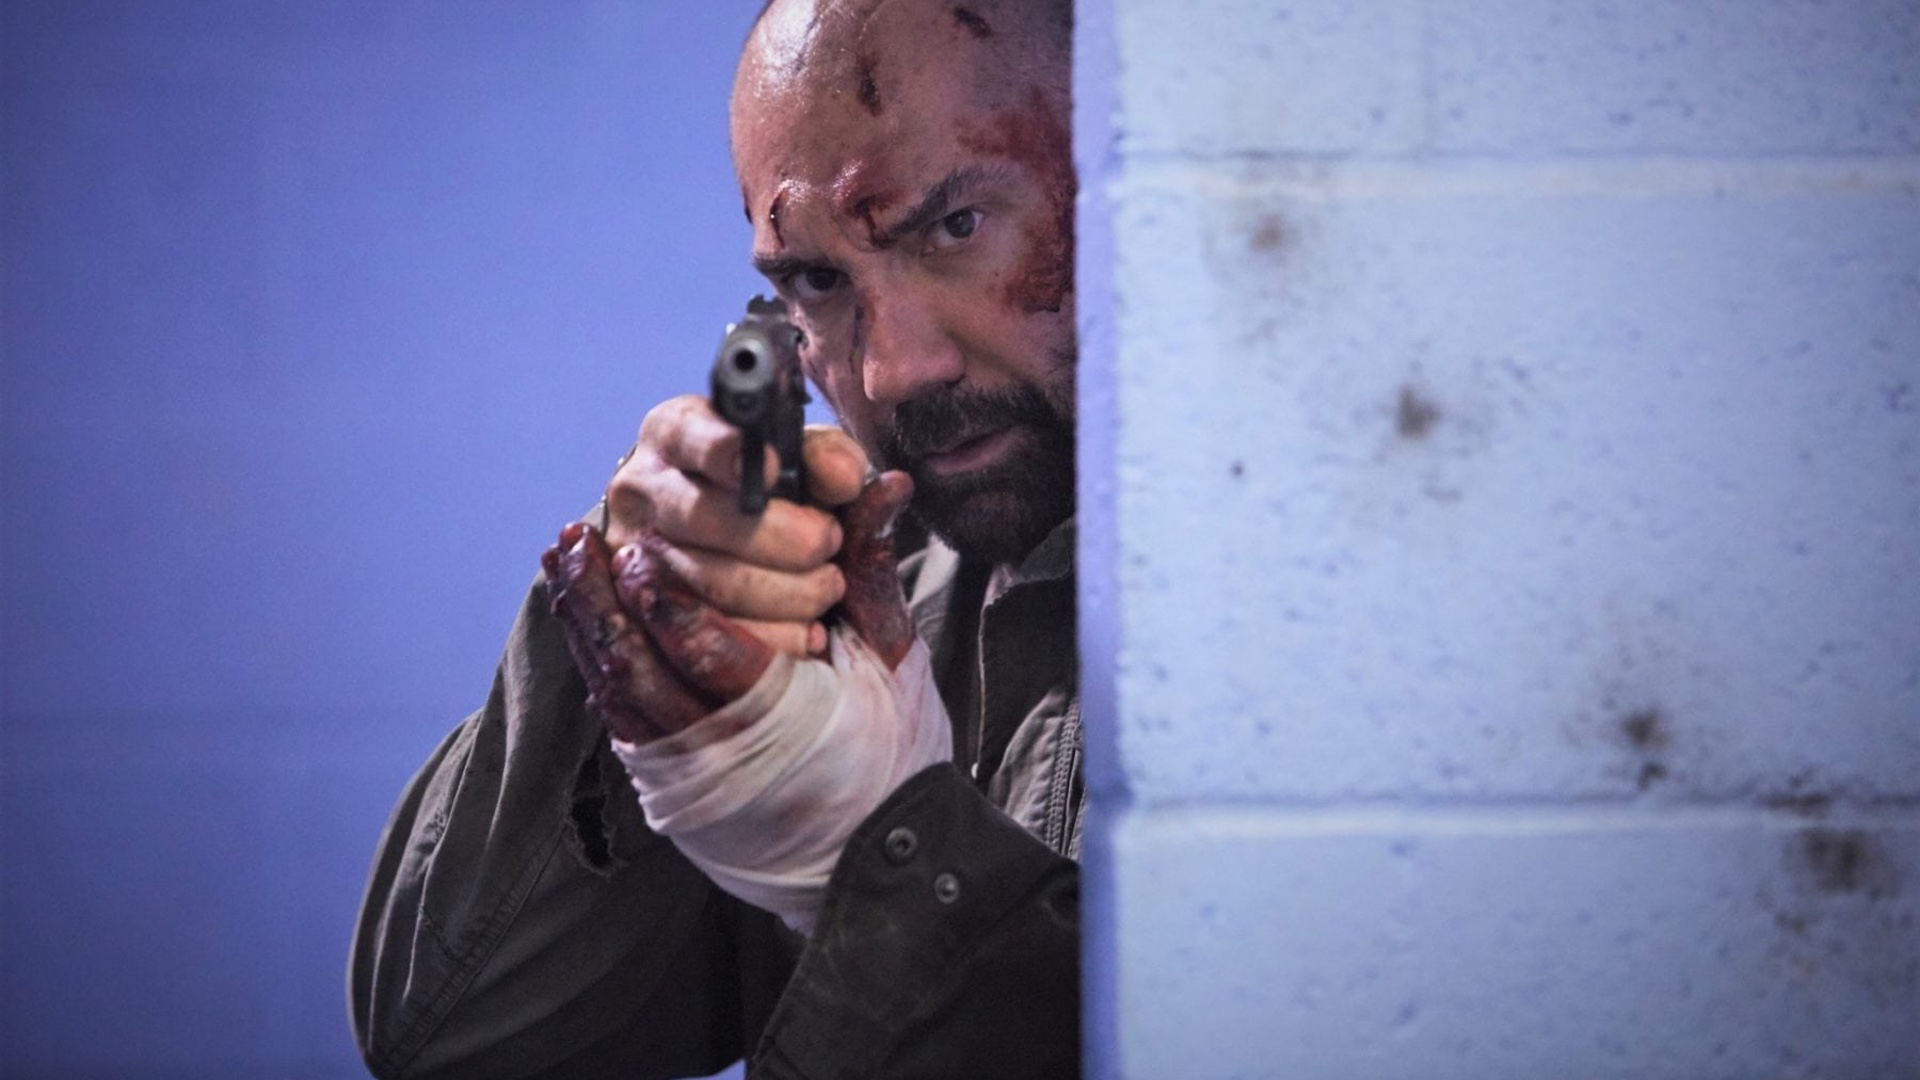 dave-bautista-and-director-peter-segal-are-developing-a-new-action-comedy-called-my-spy-social.jpg